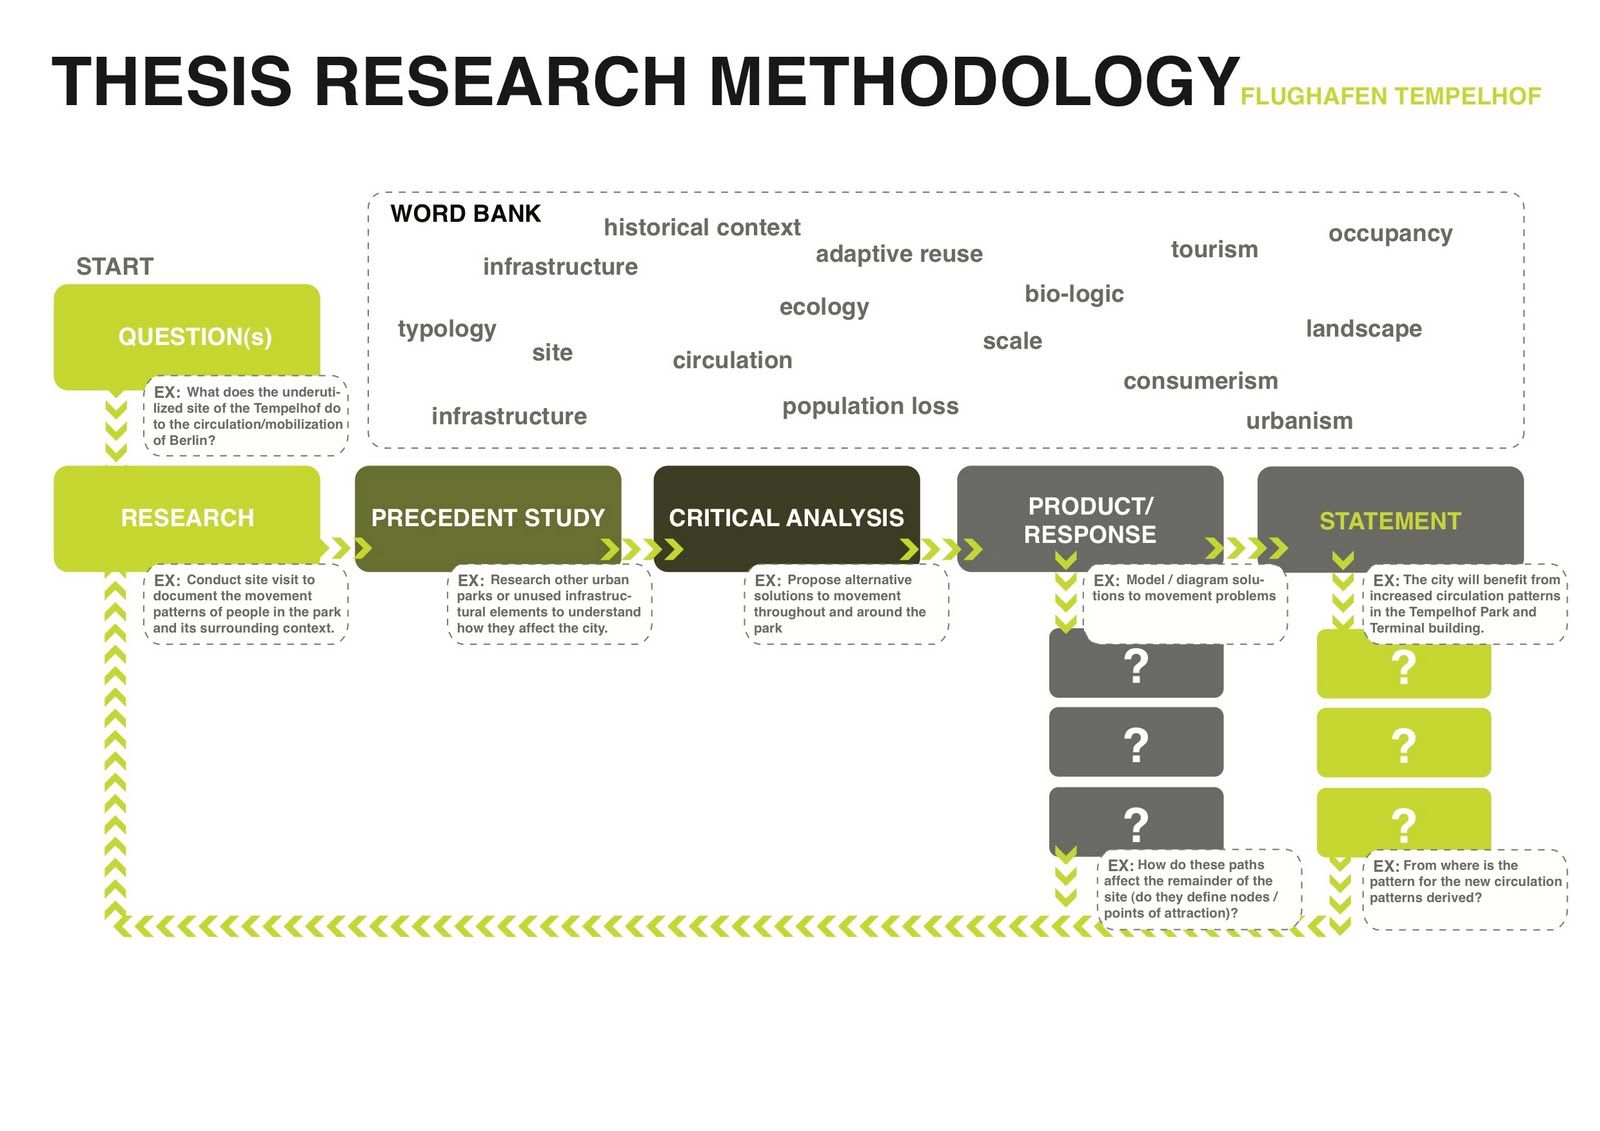 Master thesis proposal methodology